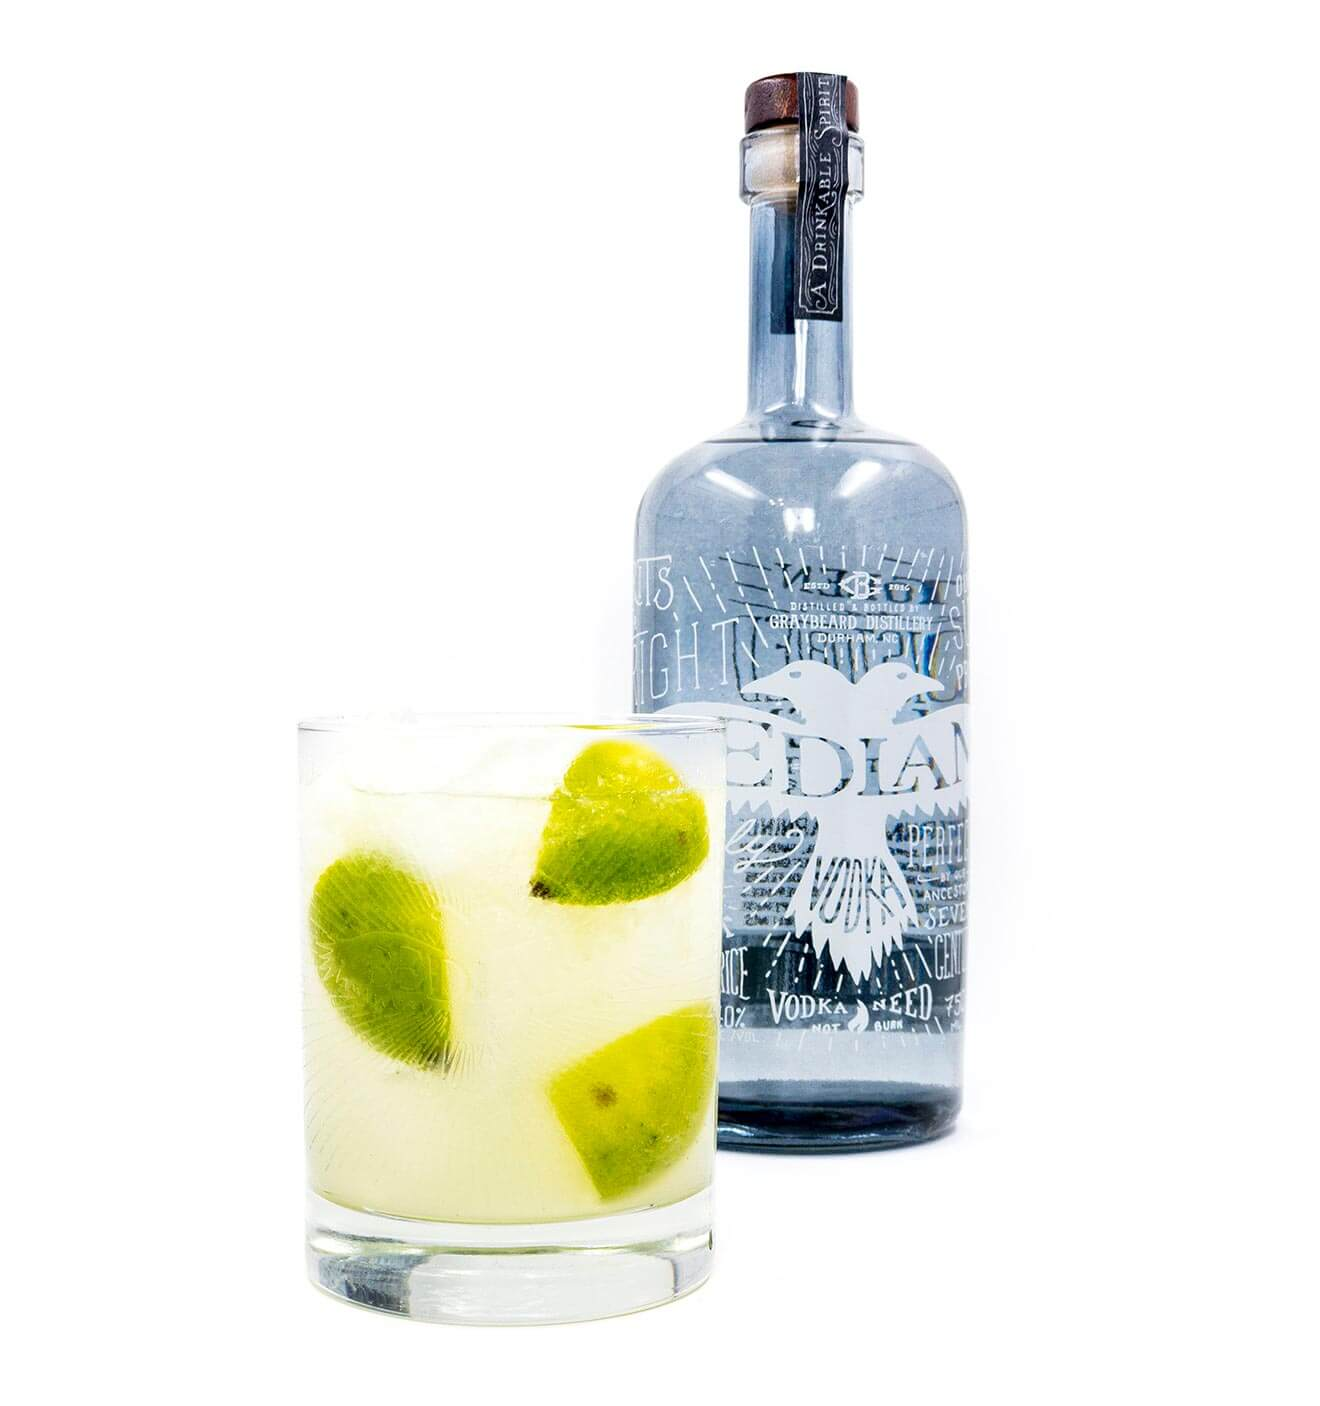 Bedlam Caipiroska, with cocktail and bottle on white